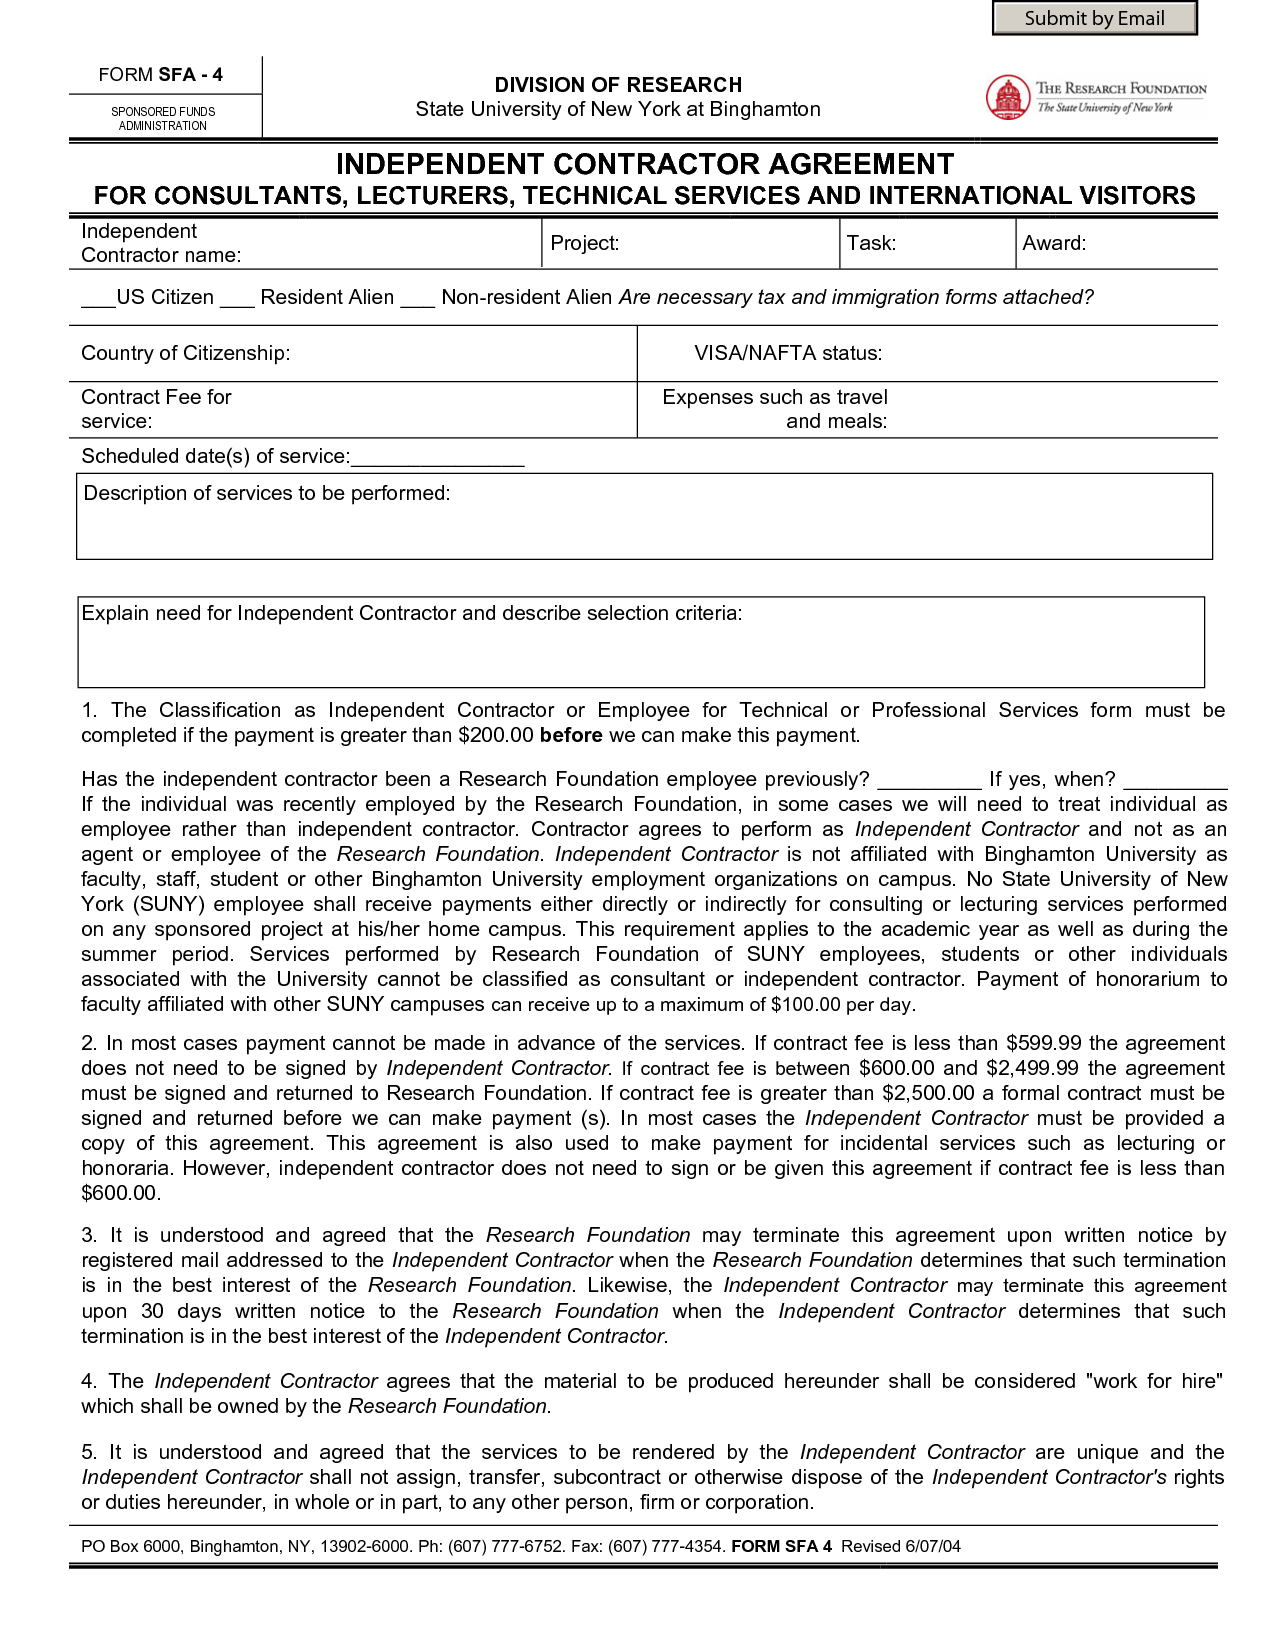 Independent Contractor Contract Forms By Sburnet2 Contract Forms